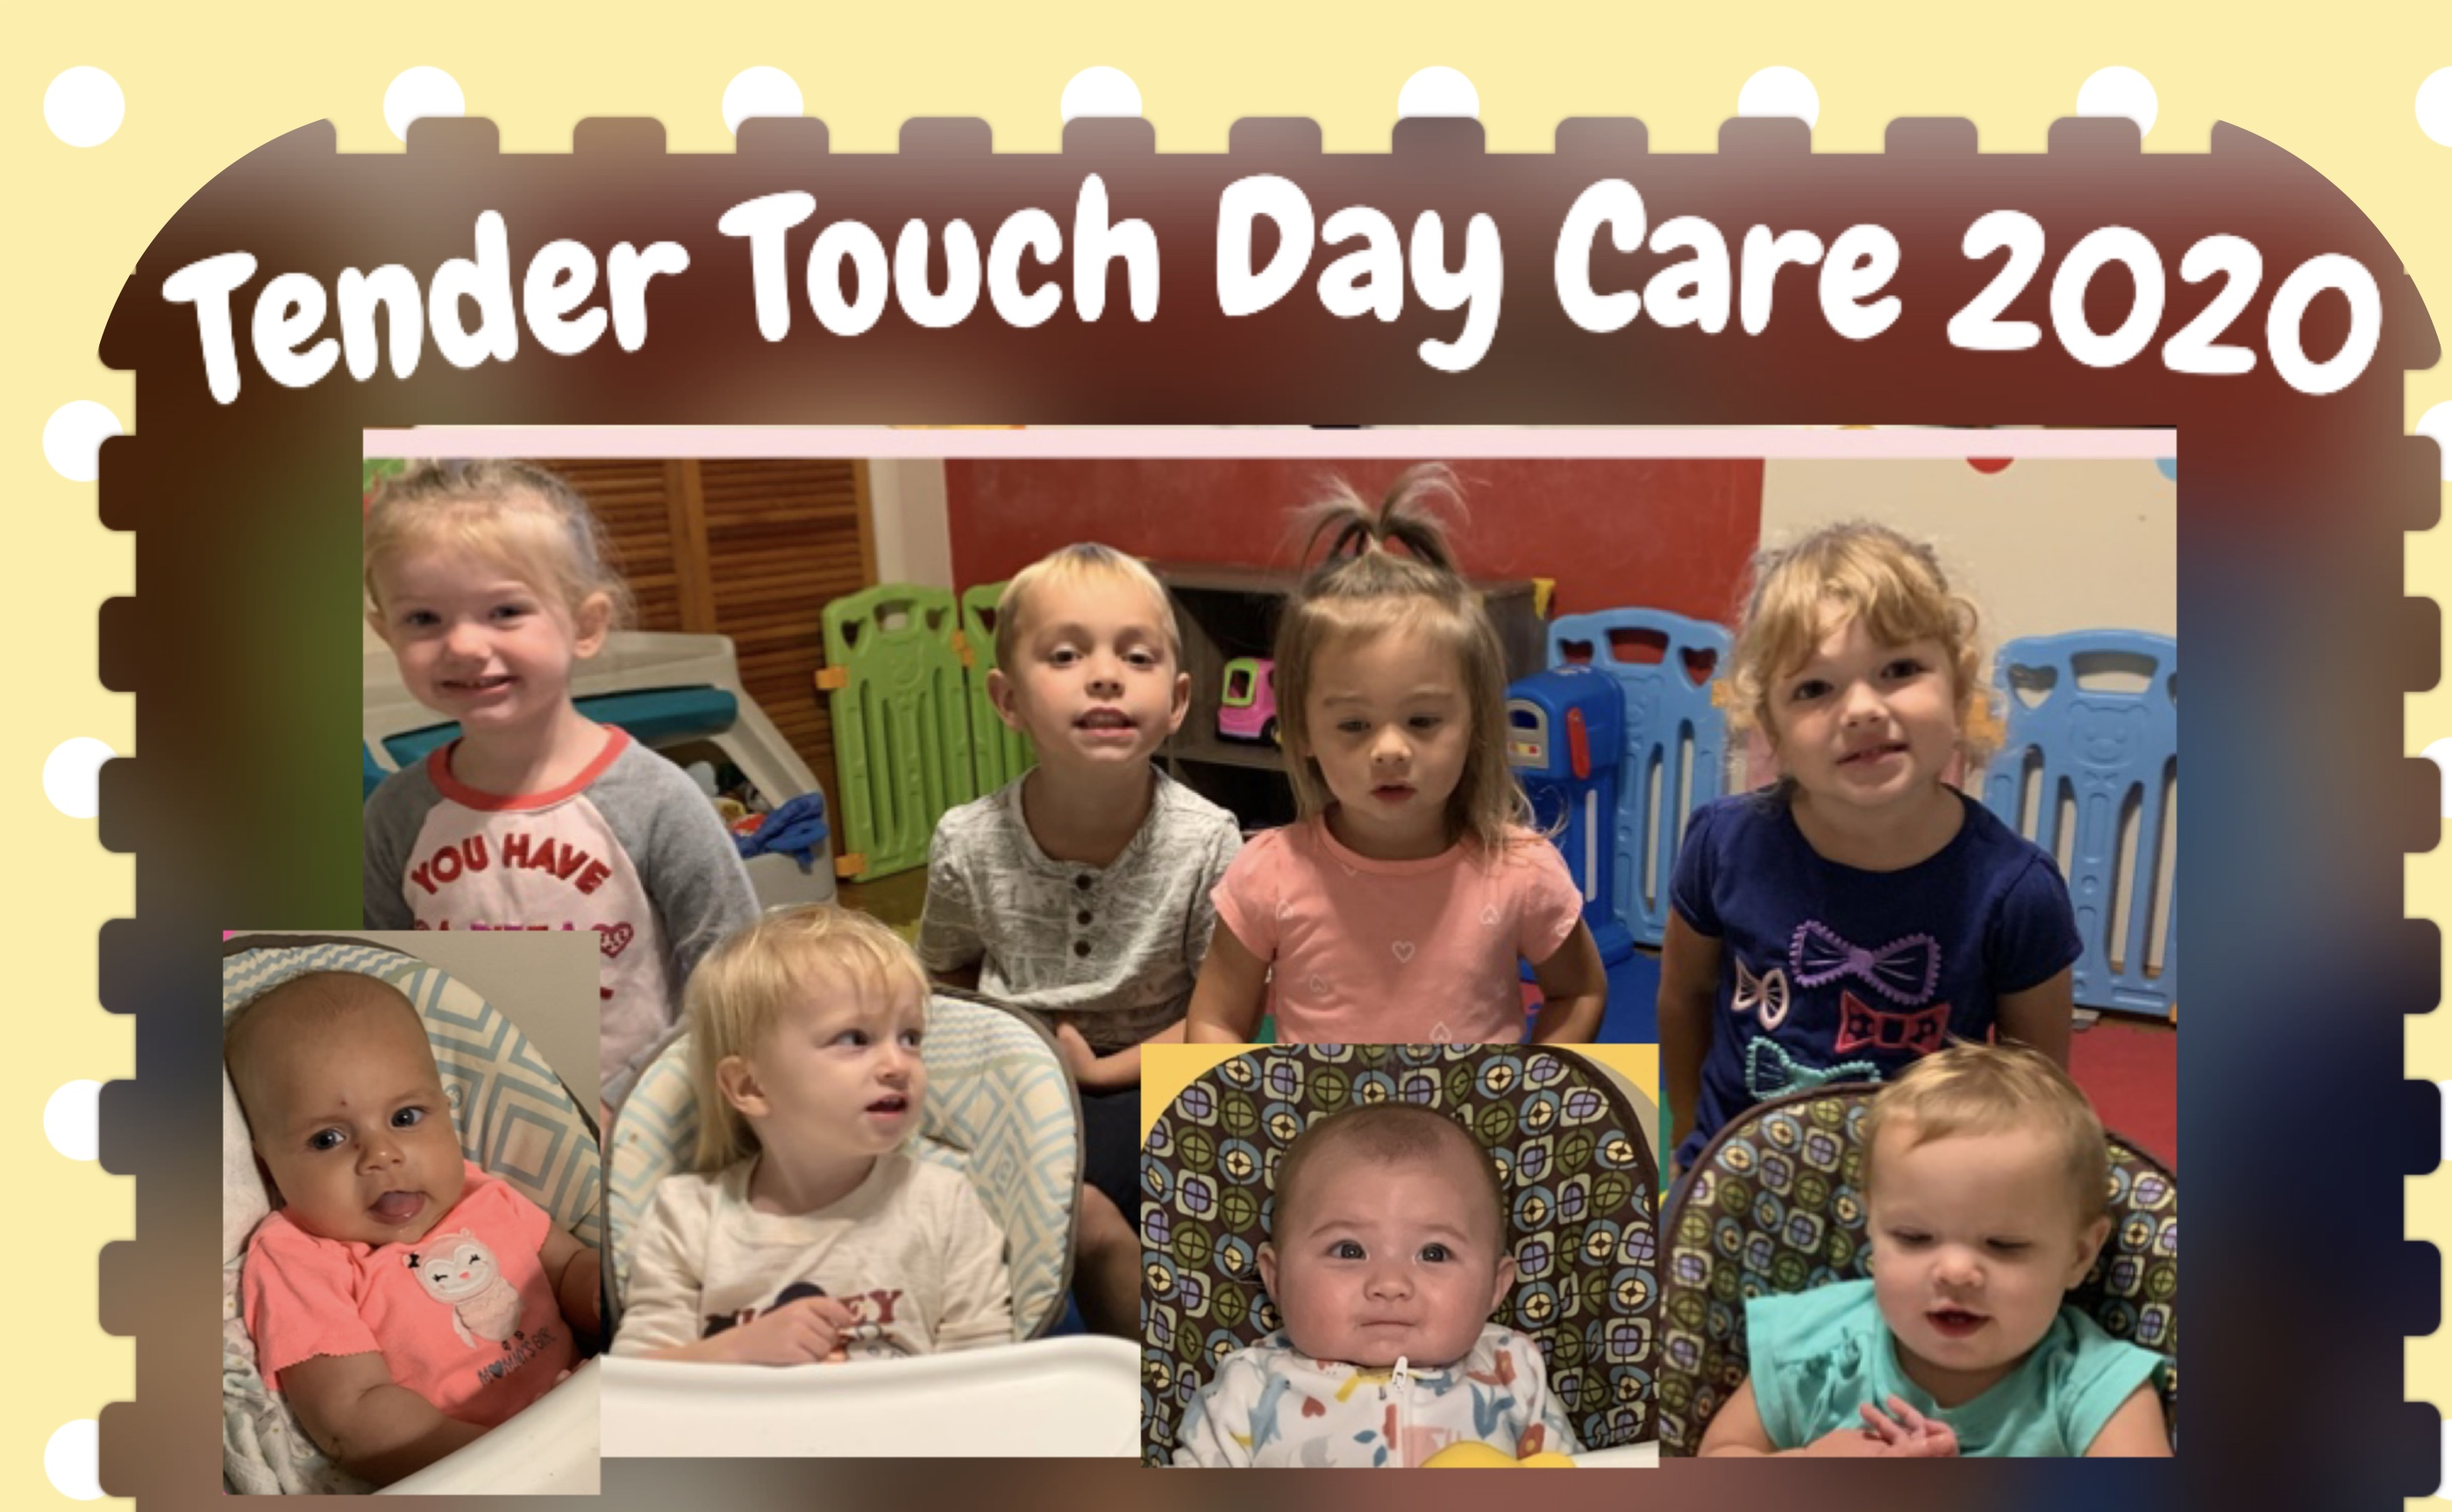 TENDER TOUCH DAYCARE